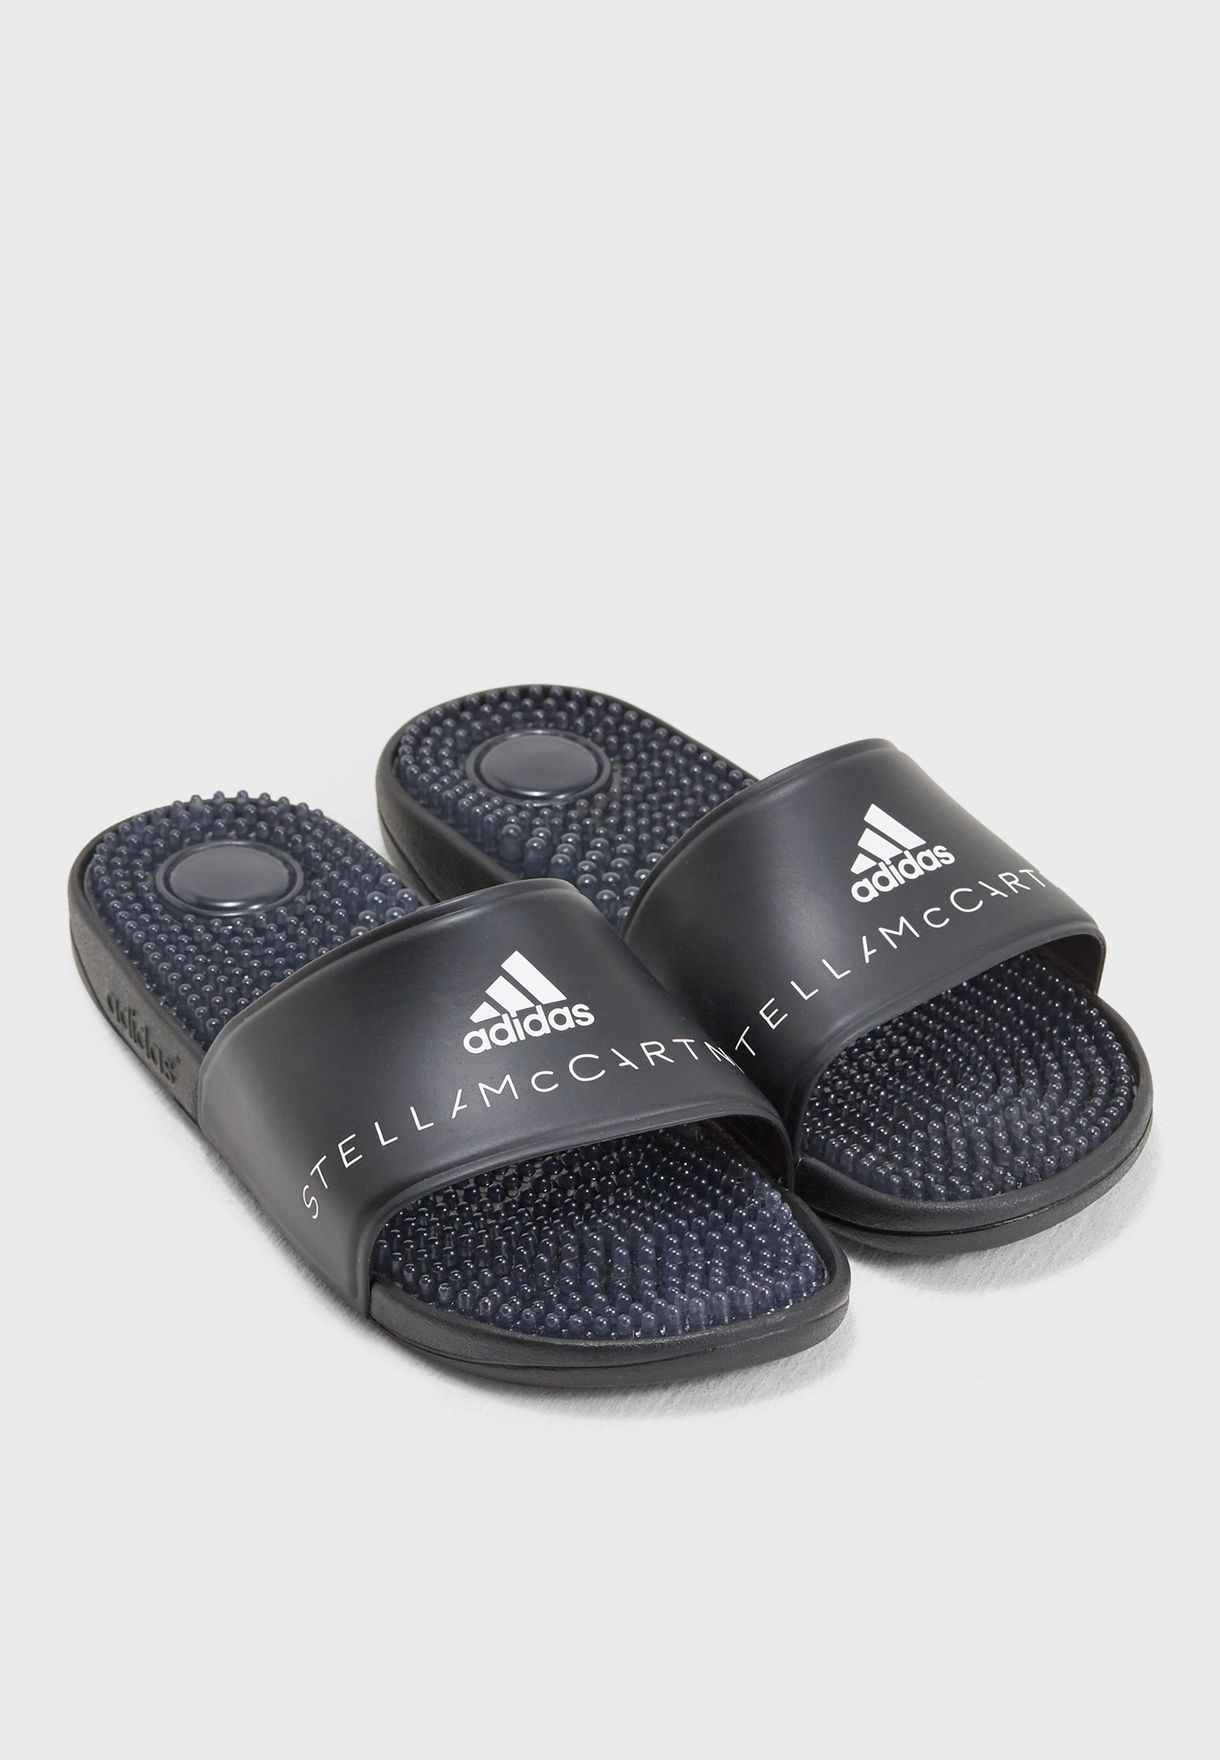 b6bb05519643 Shop adidas by Stella McCartney black Adissage Slides AC8200 for ...